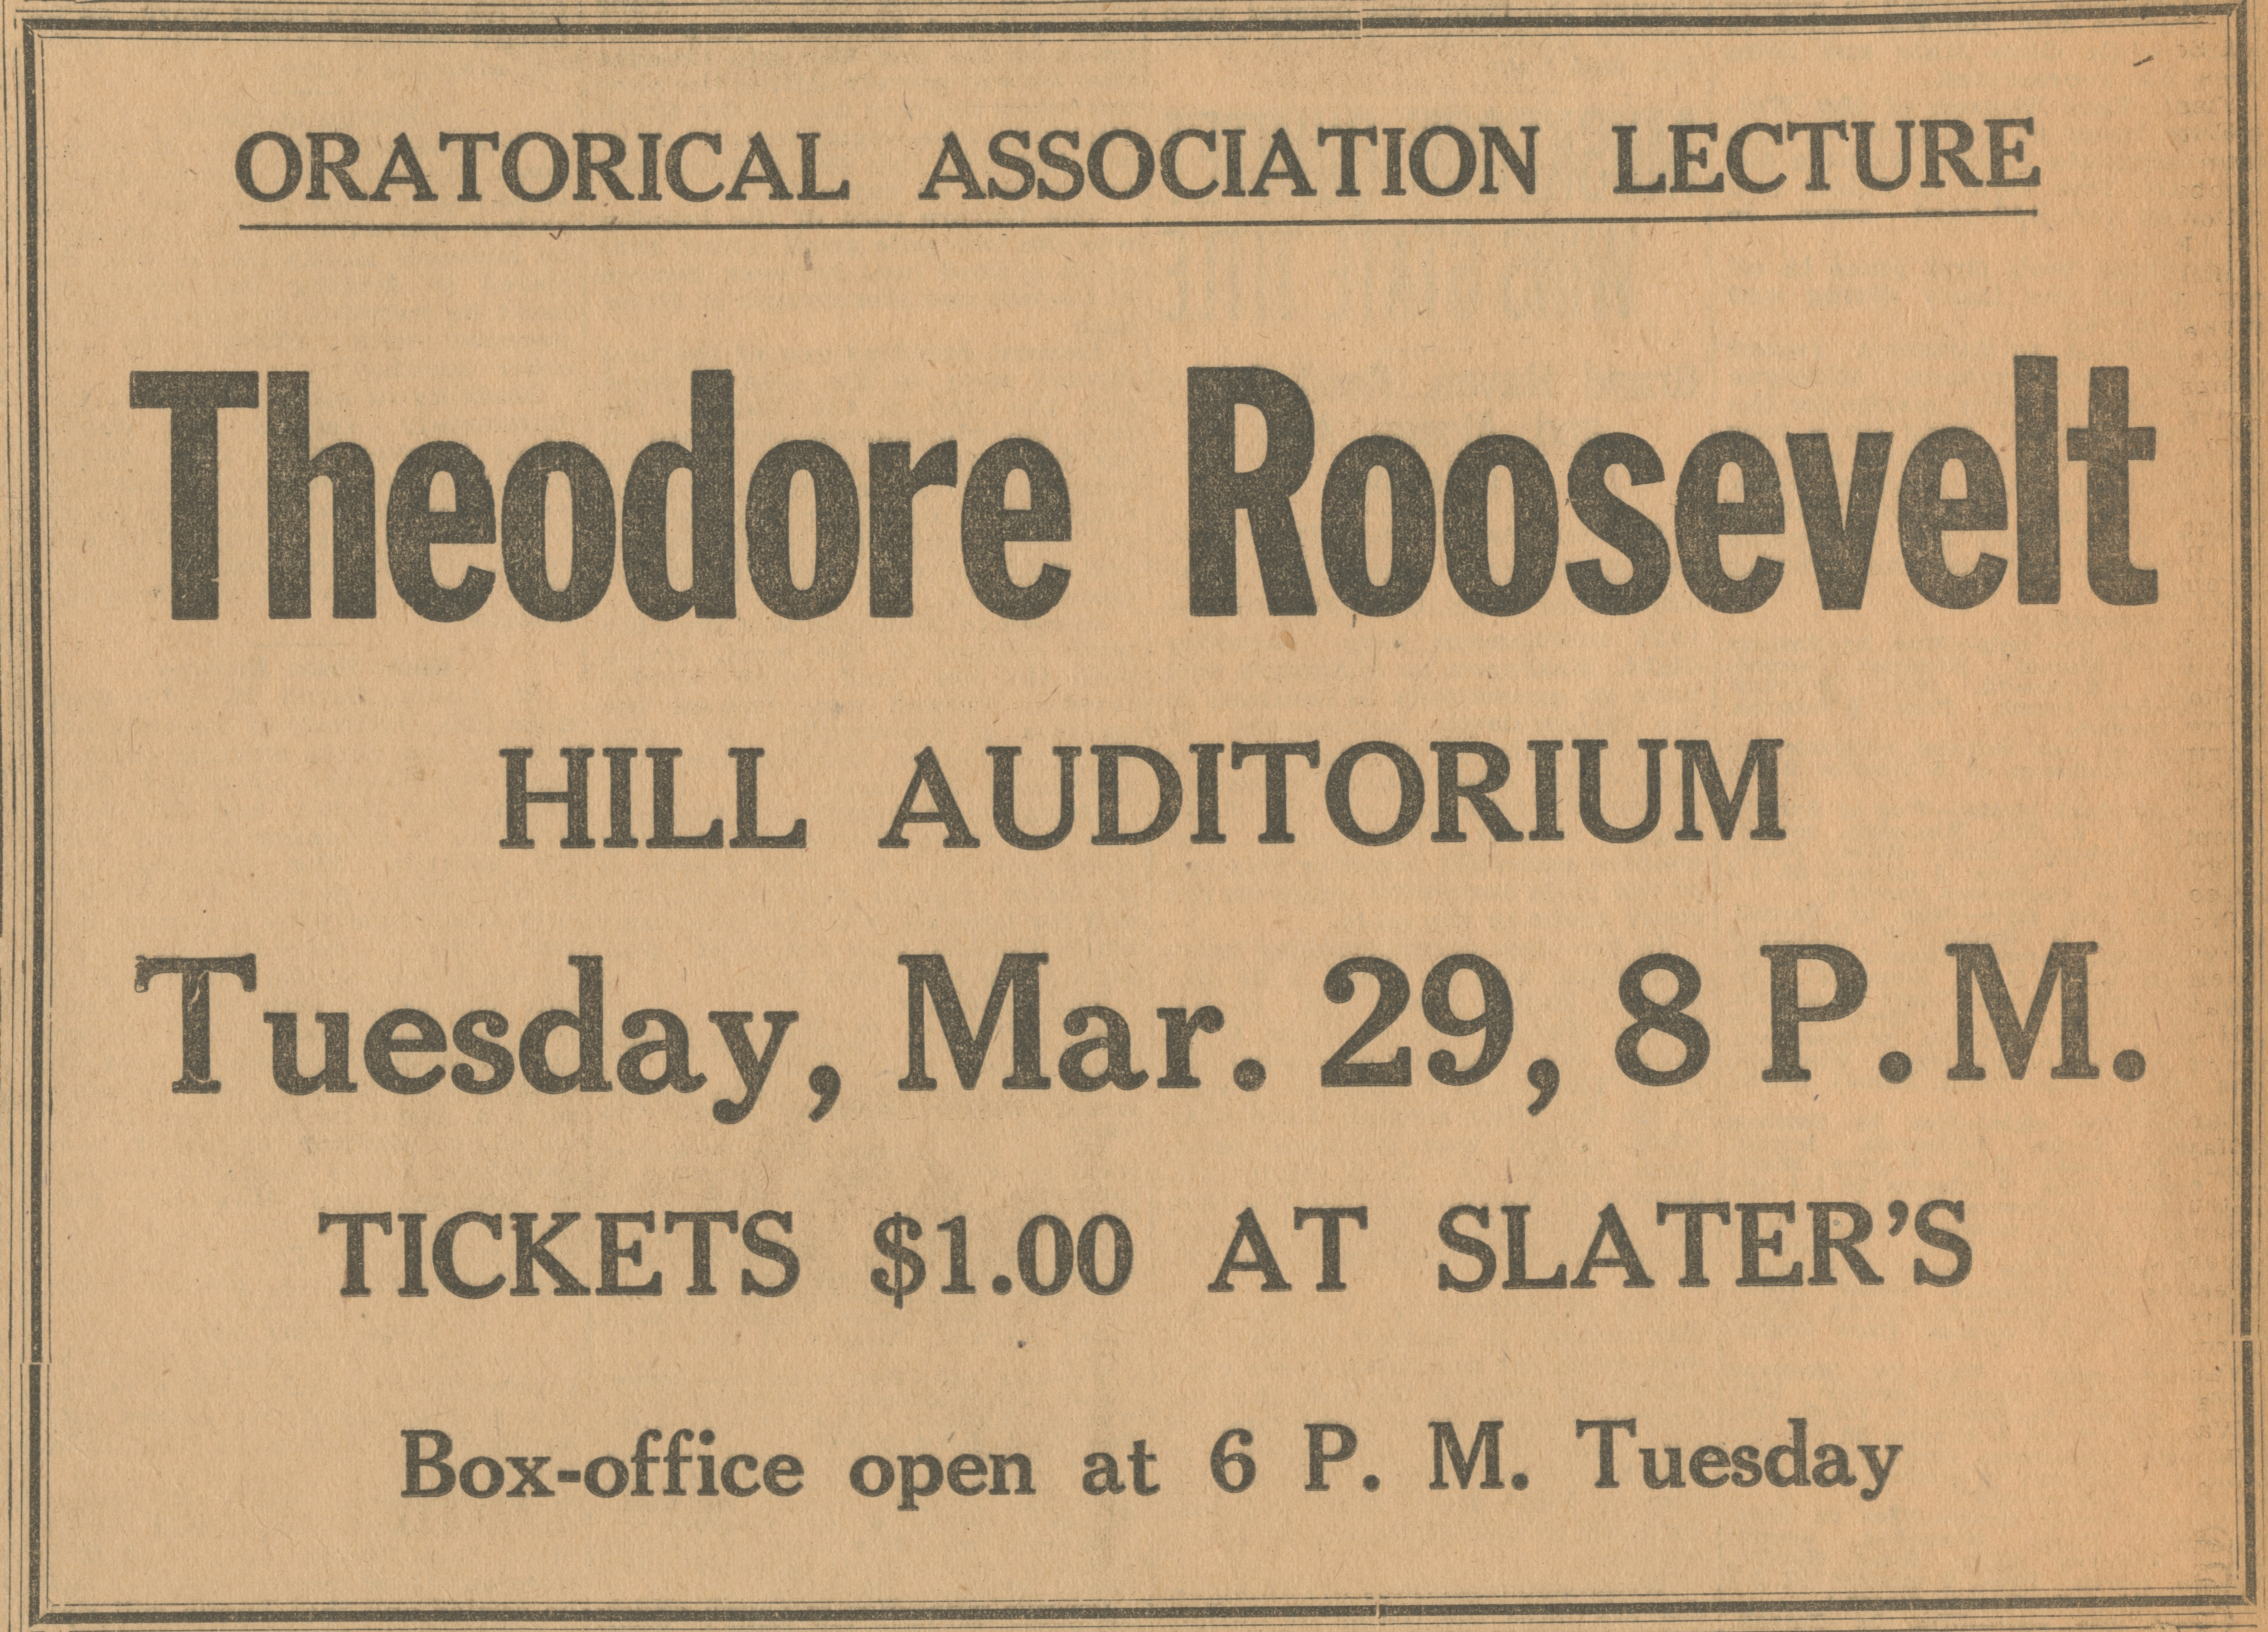 Oratorical Association Lecture: Theodore Roosevelt - March 28, 1927 image